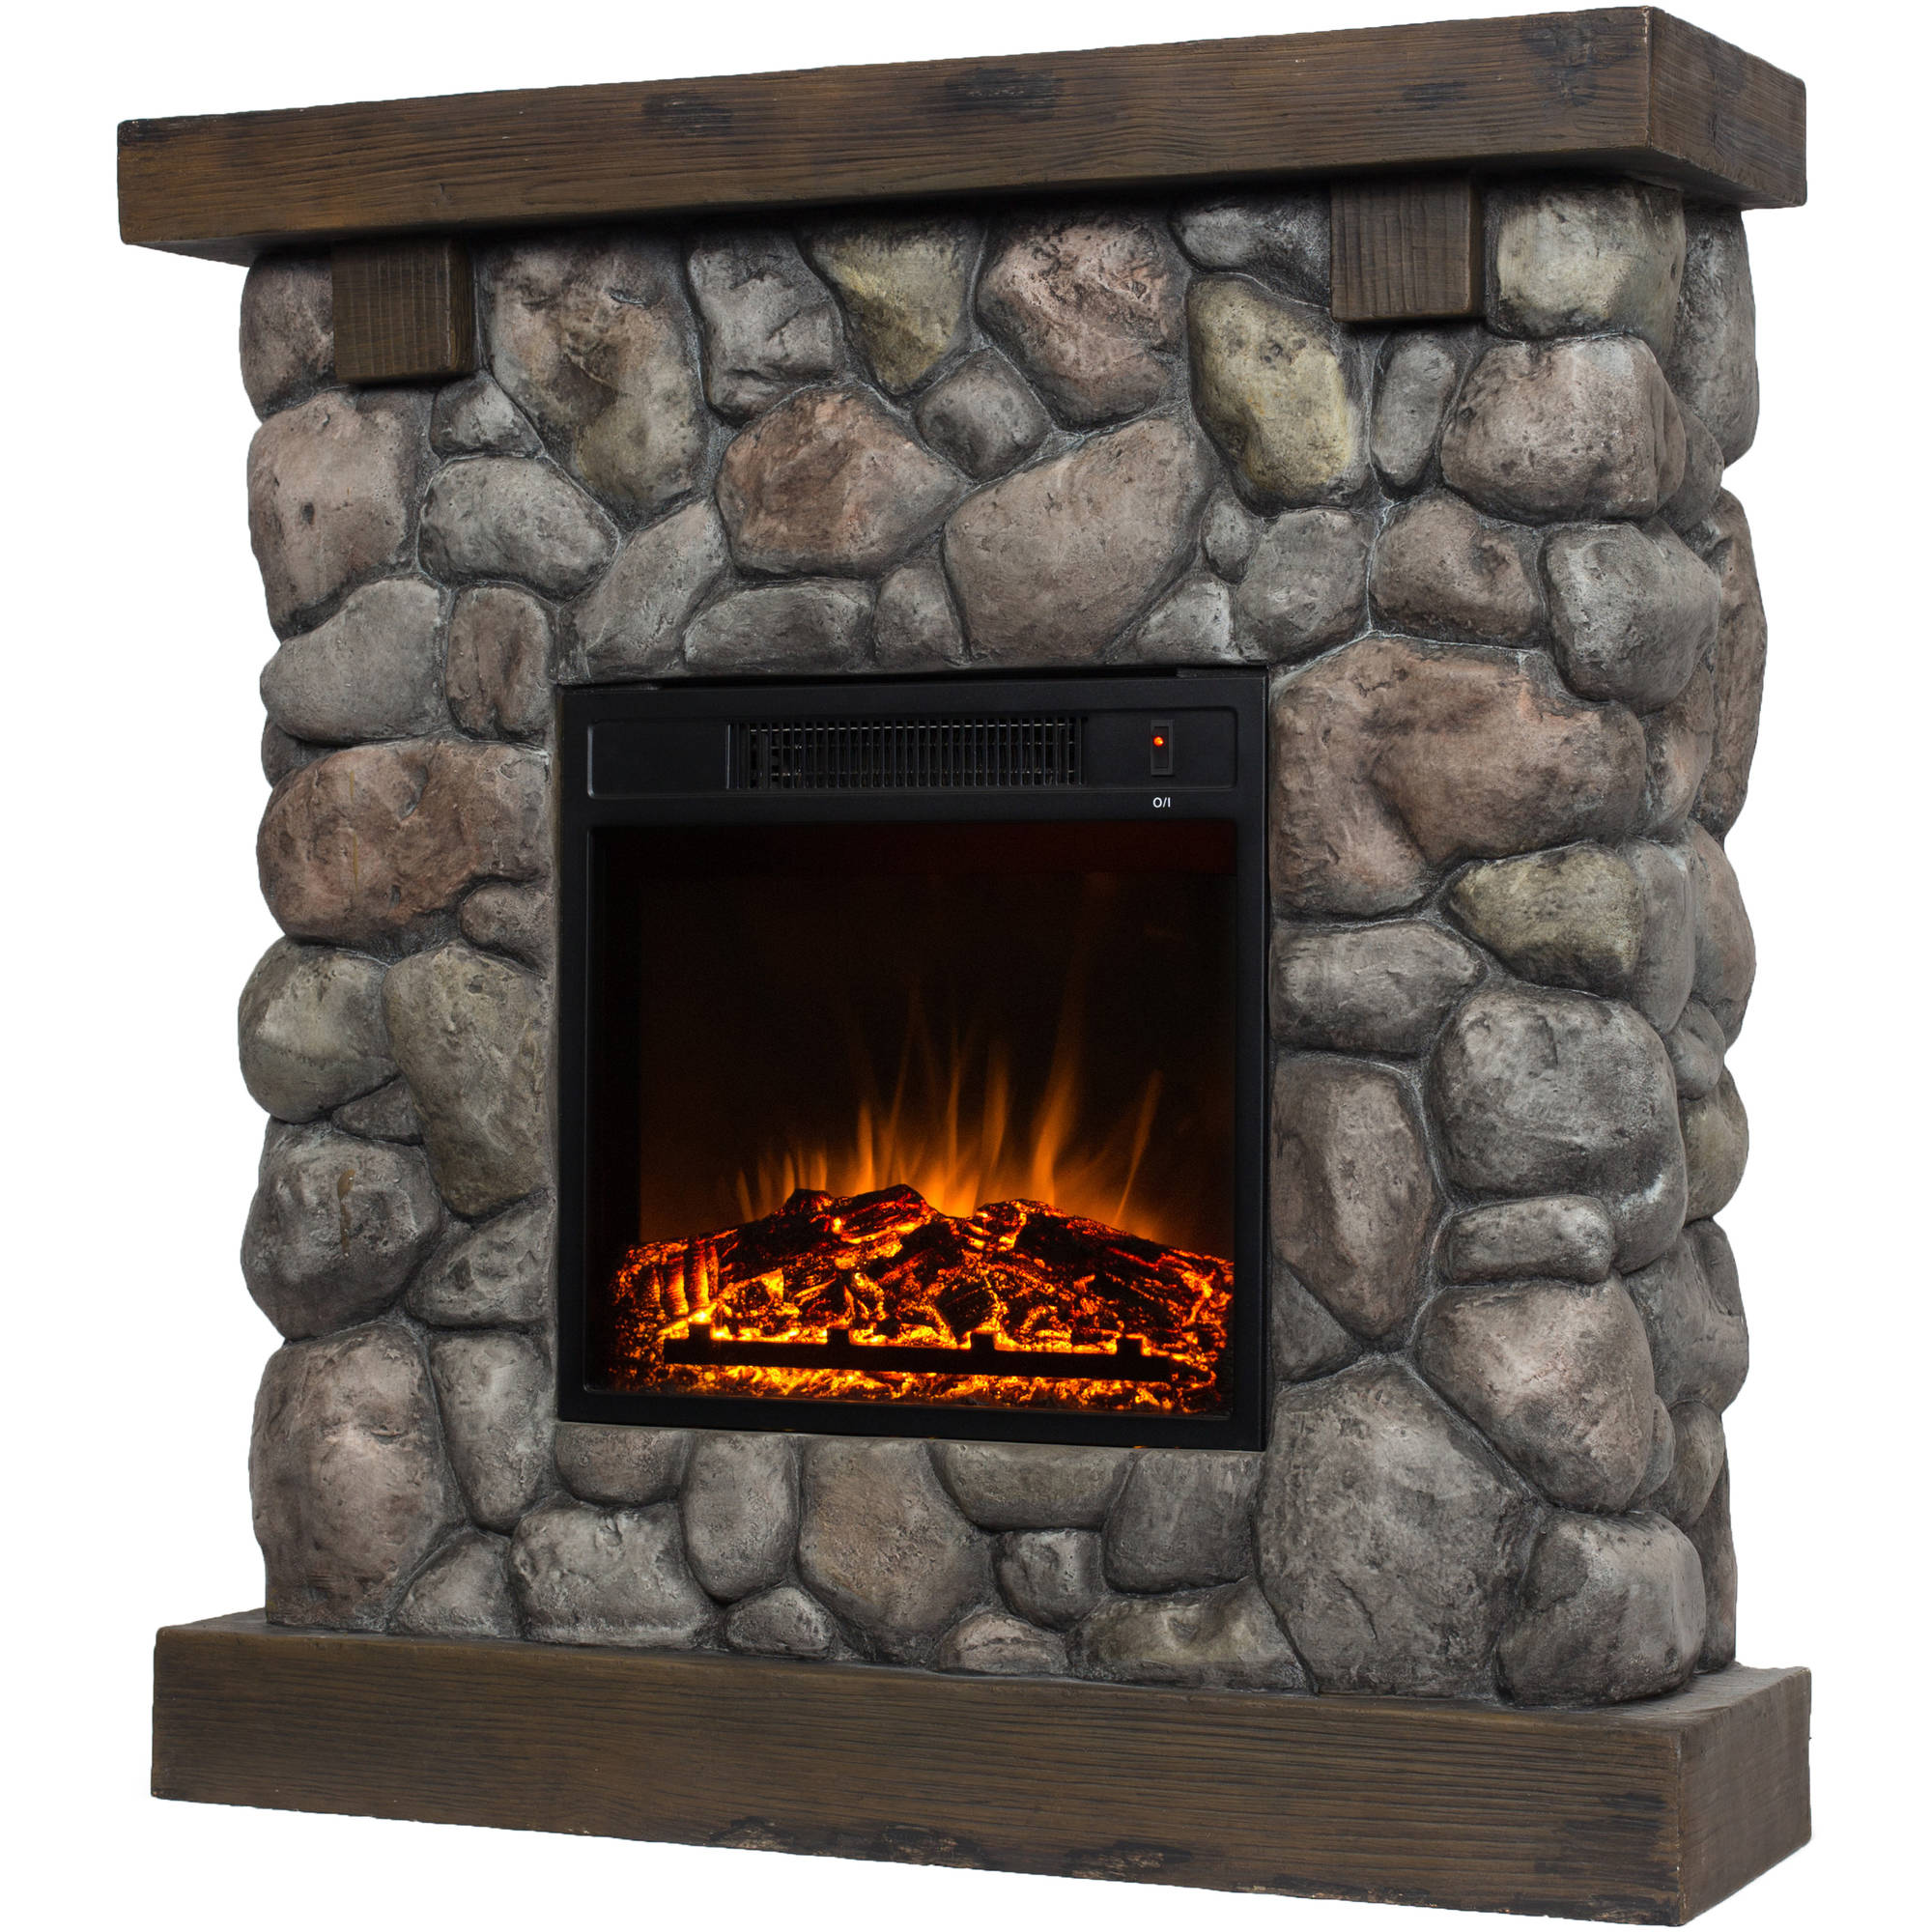 fireplace blanchard product free with mantle garden harper ivory shipping electric home blvd on